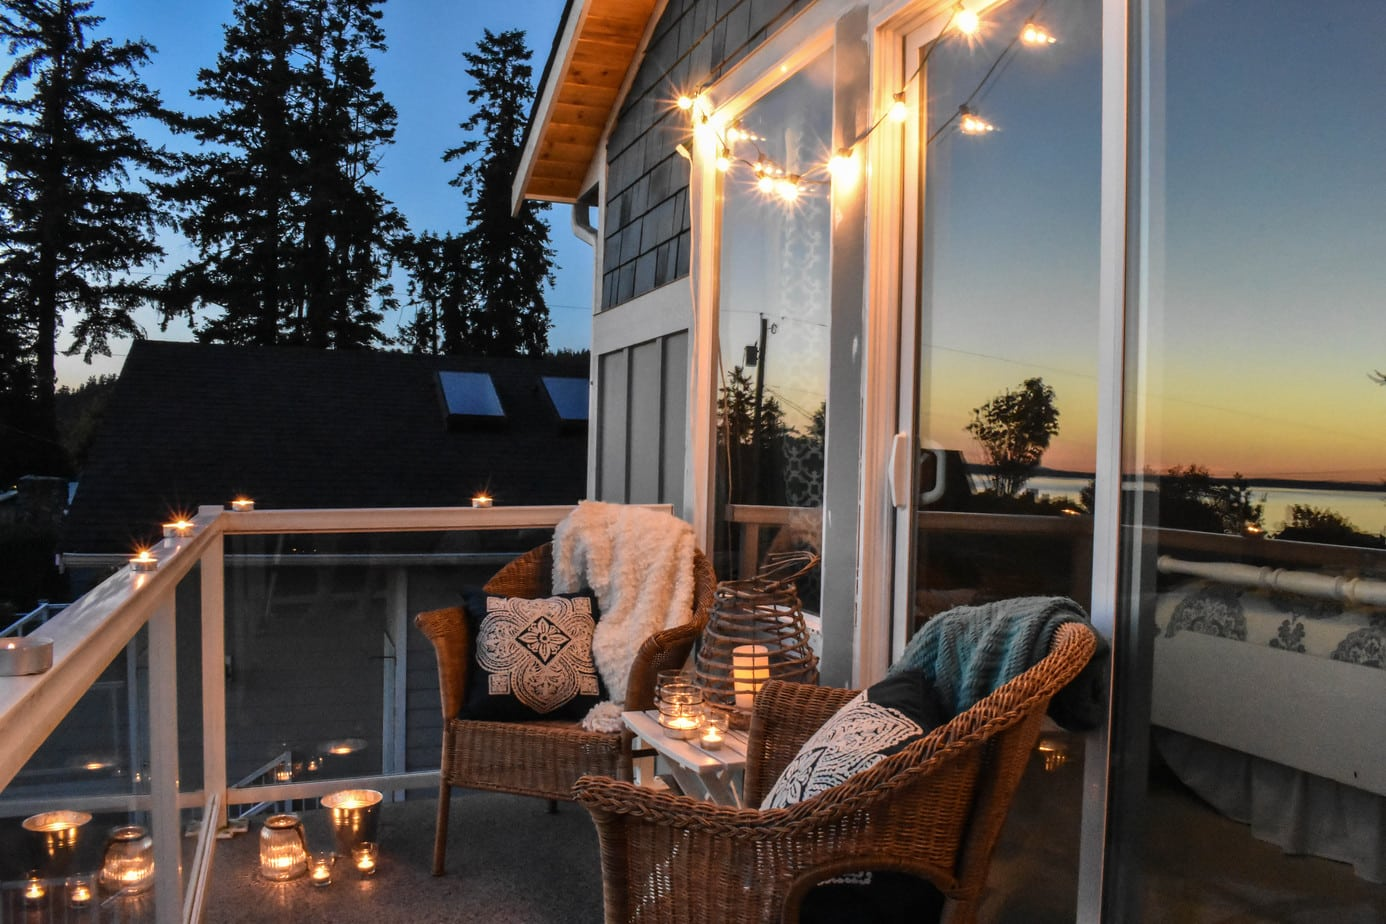 Backyard Lighting Ideas: A Simple Guide for Outdoor Living Spaces